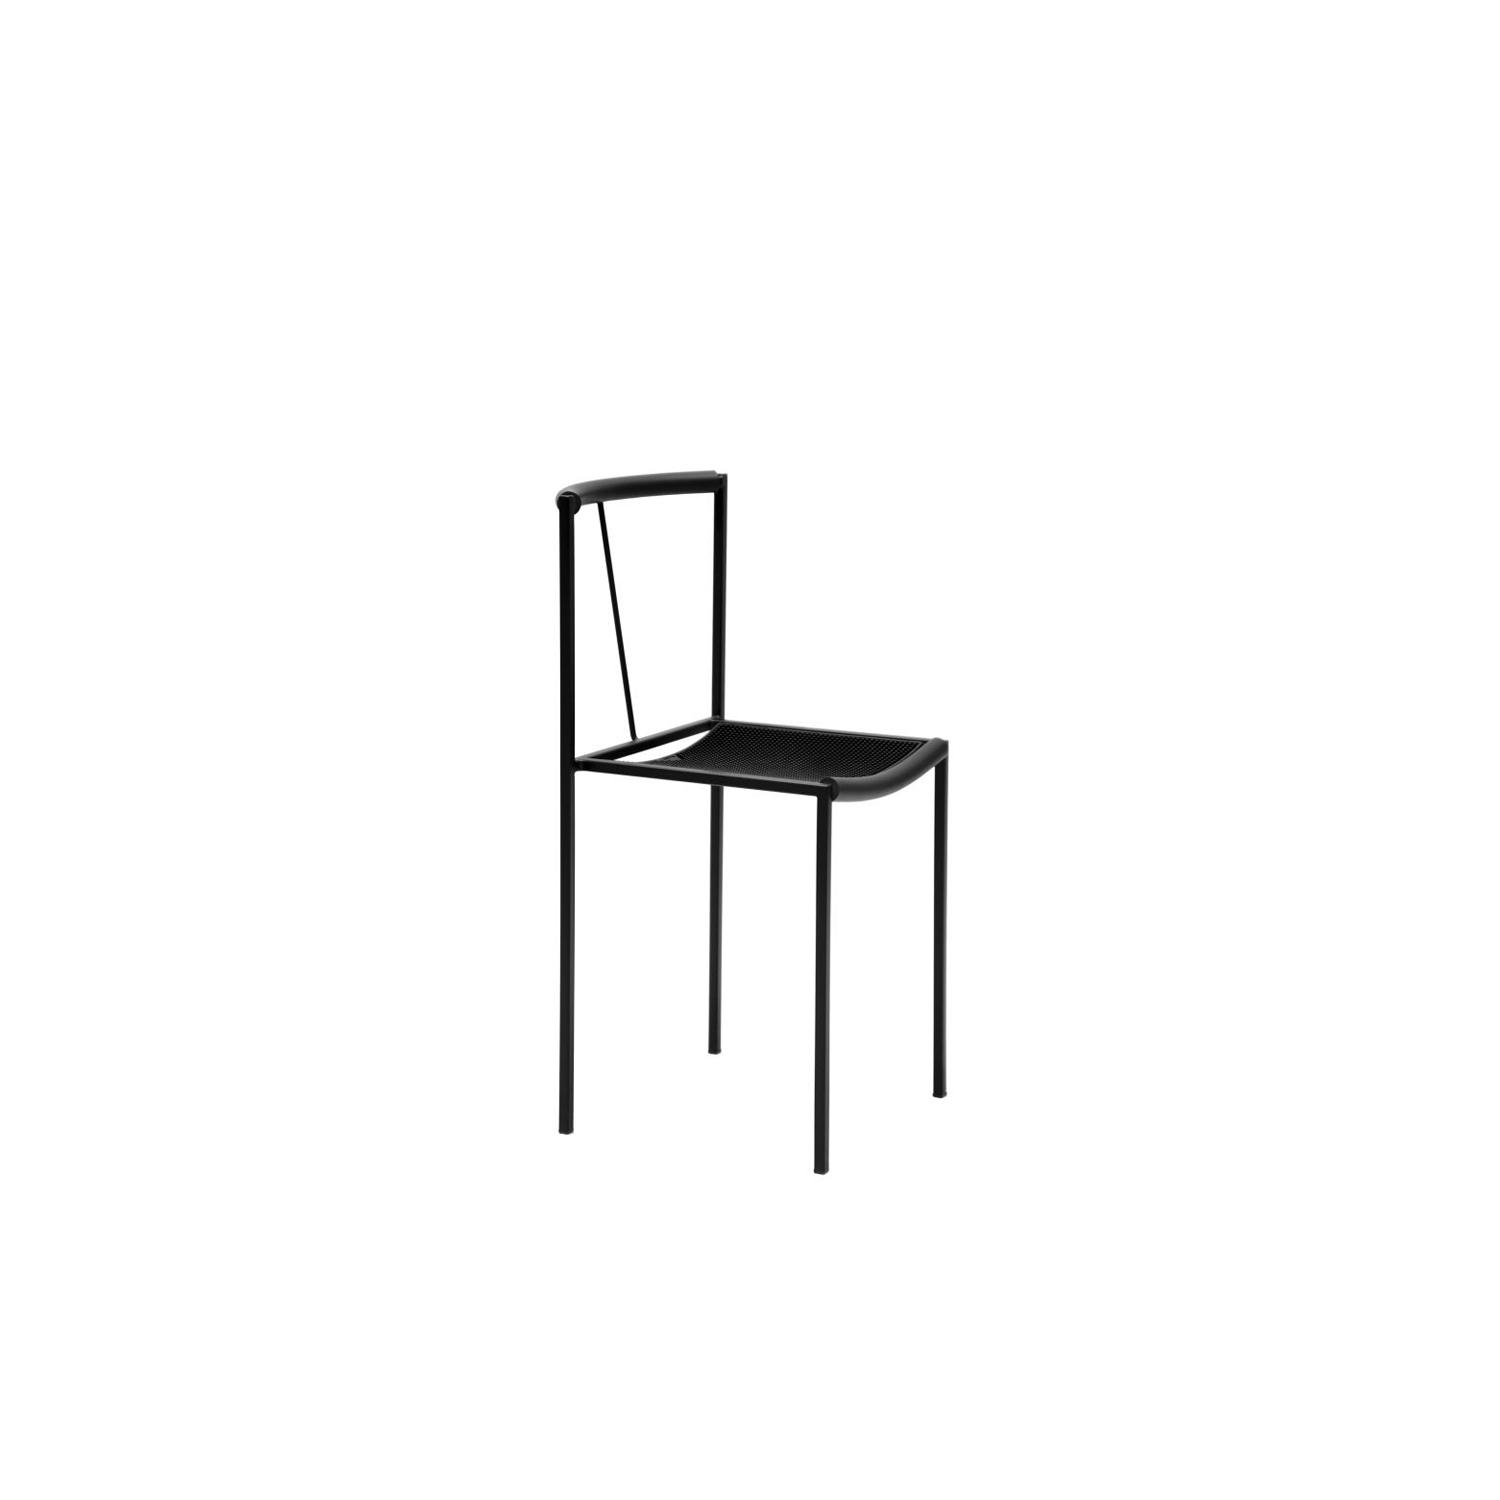 Sedia - Designed in 1984 by Maurizio Peregalli, Sedia is an elegant modernist chair in all black square tubular-steel frame and rubber seating. This chair would look faultless around a dining room table as well as in a hallway